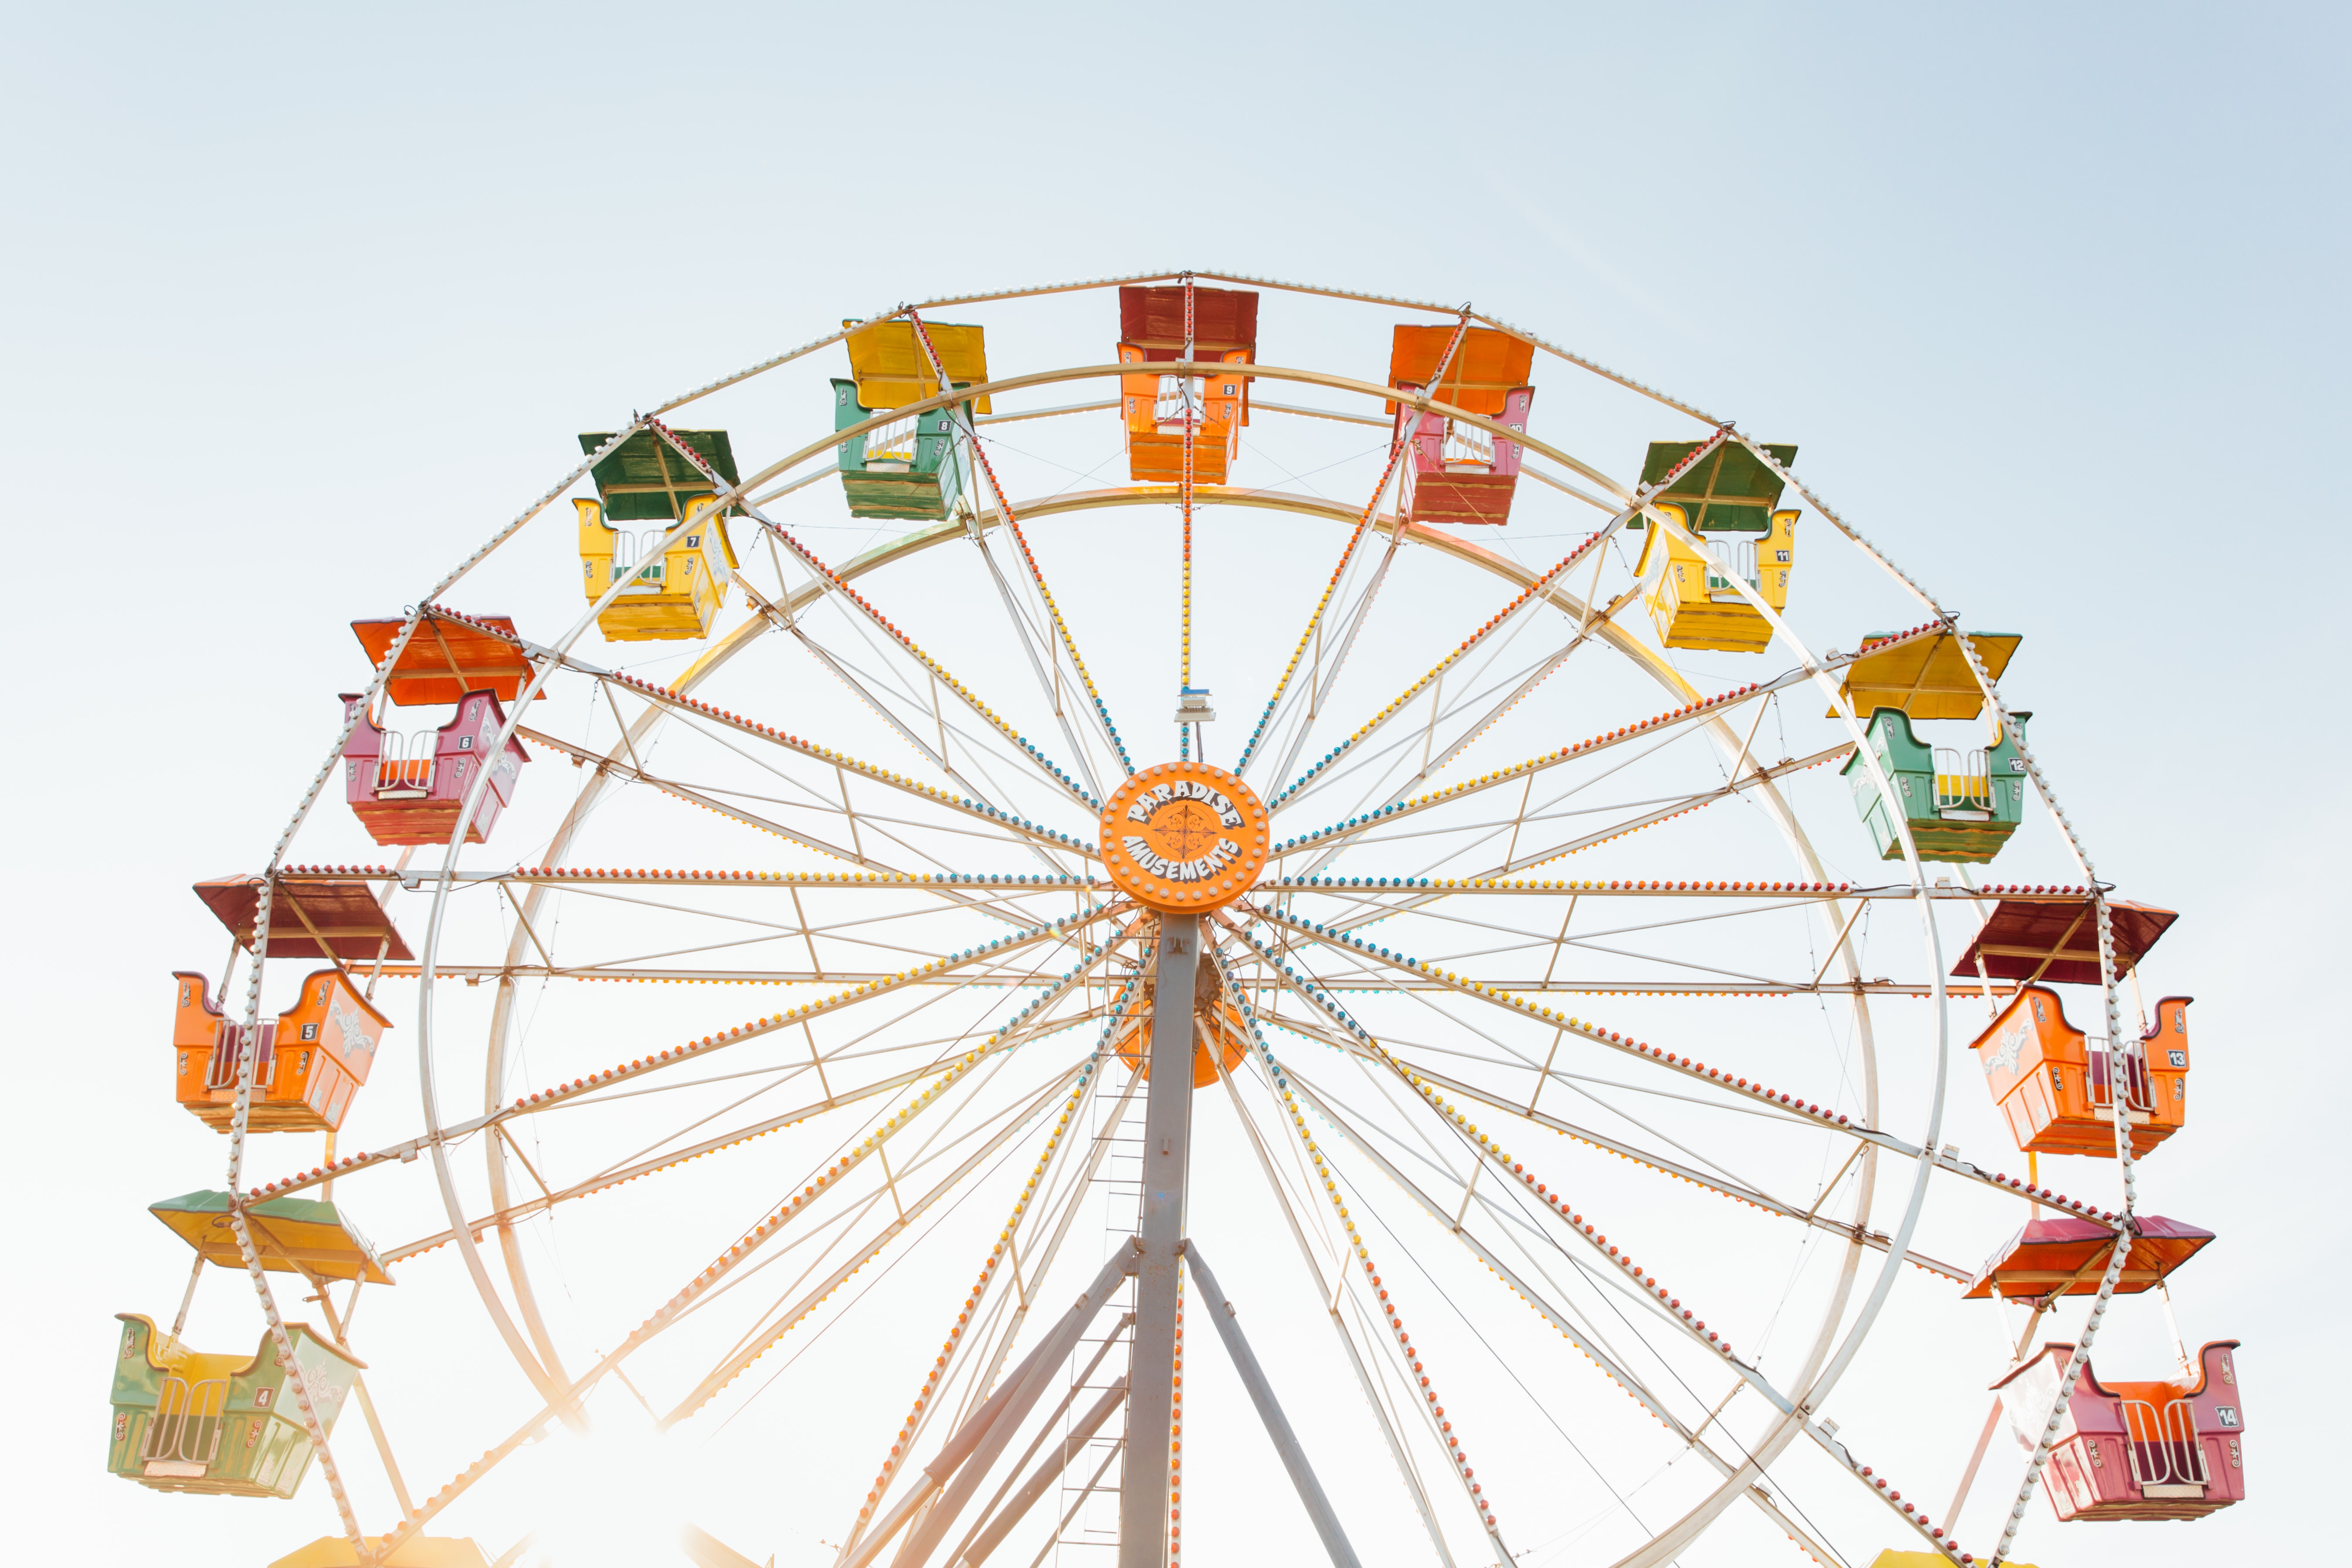 Catch a colorful ride at the huge Cleveland amusement park with  ferriswheel at summer carnival